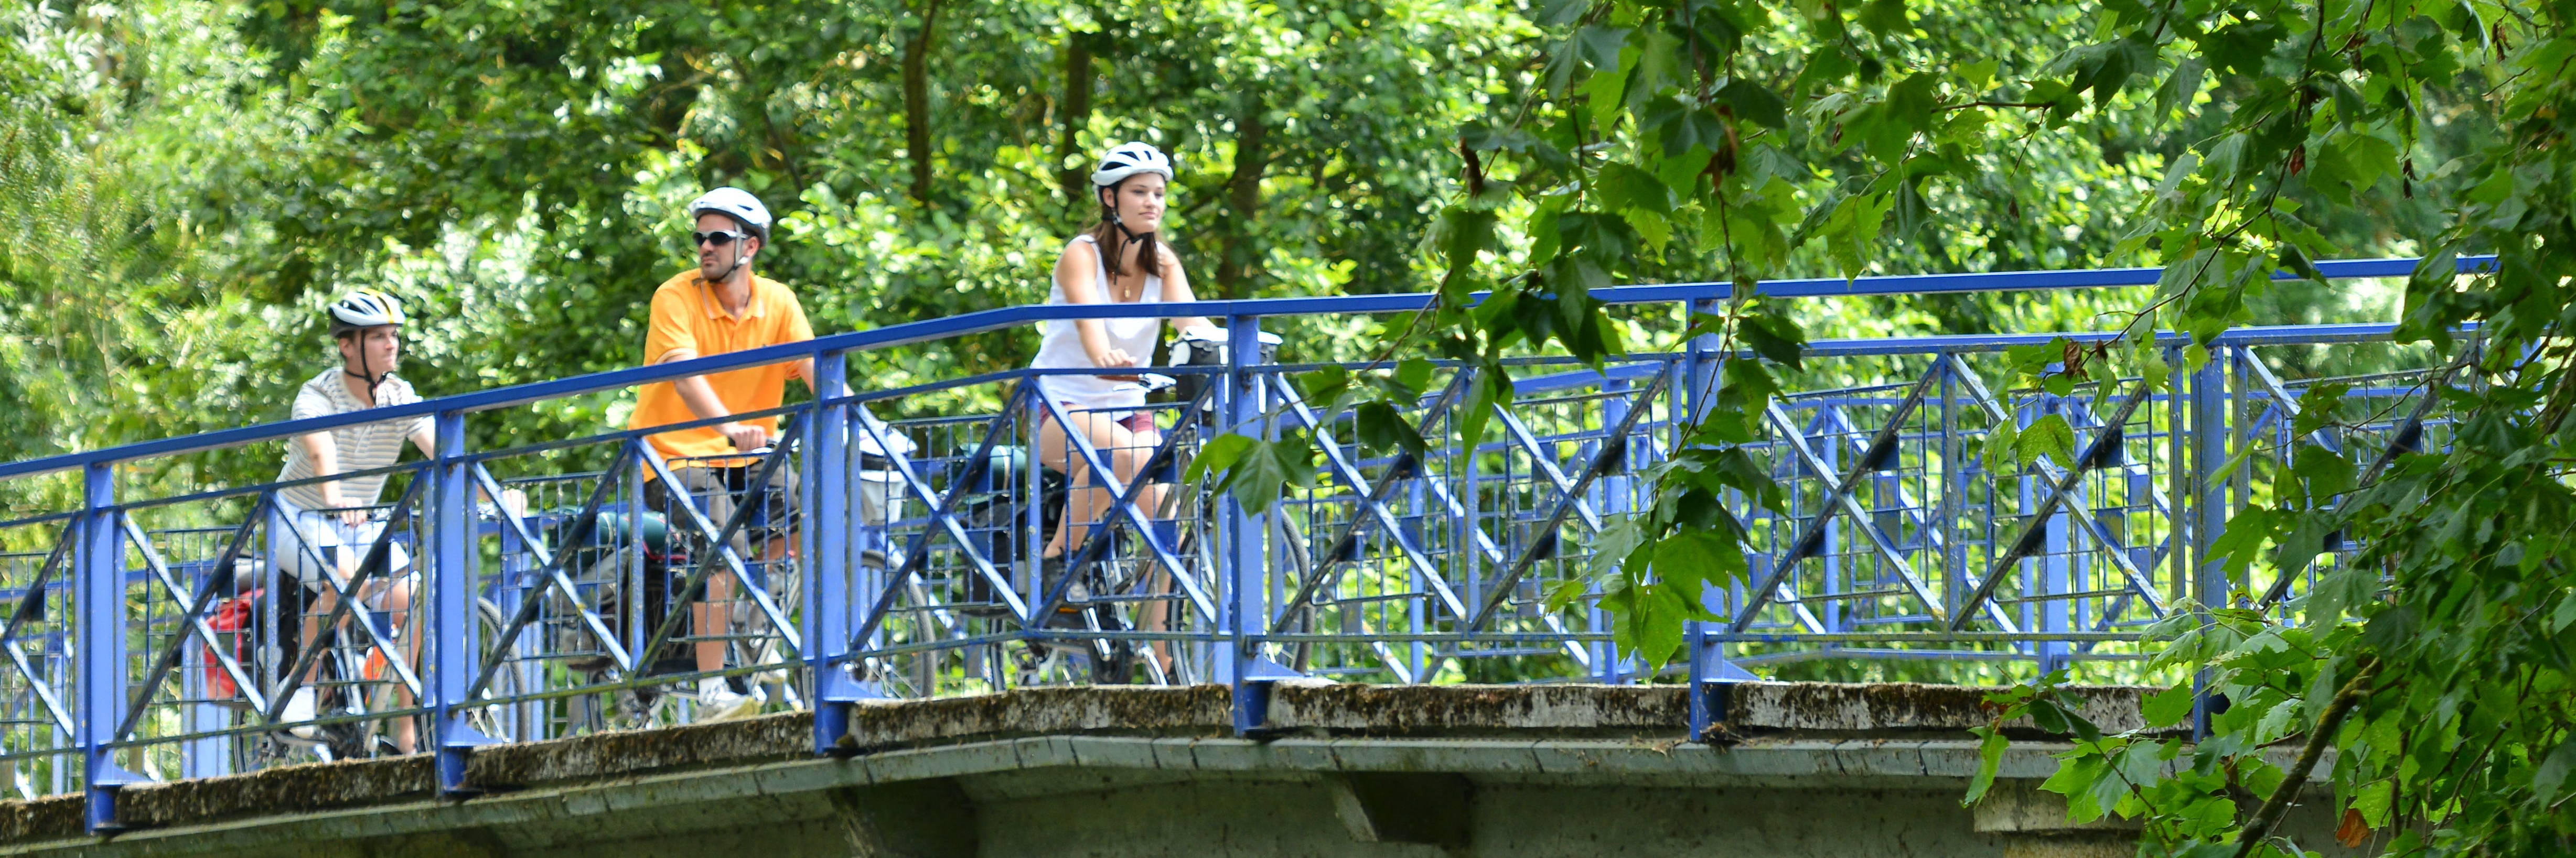 "Cycling across the Marais poitevin with the ""Vélo Francette"" bike route"